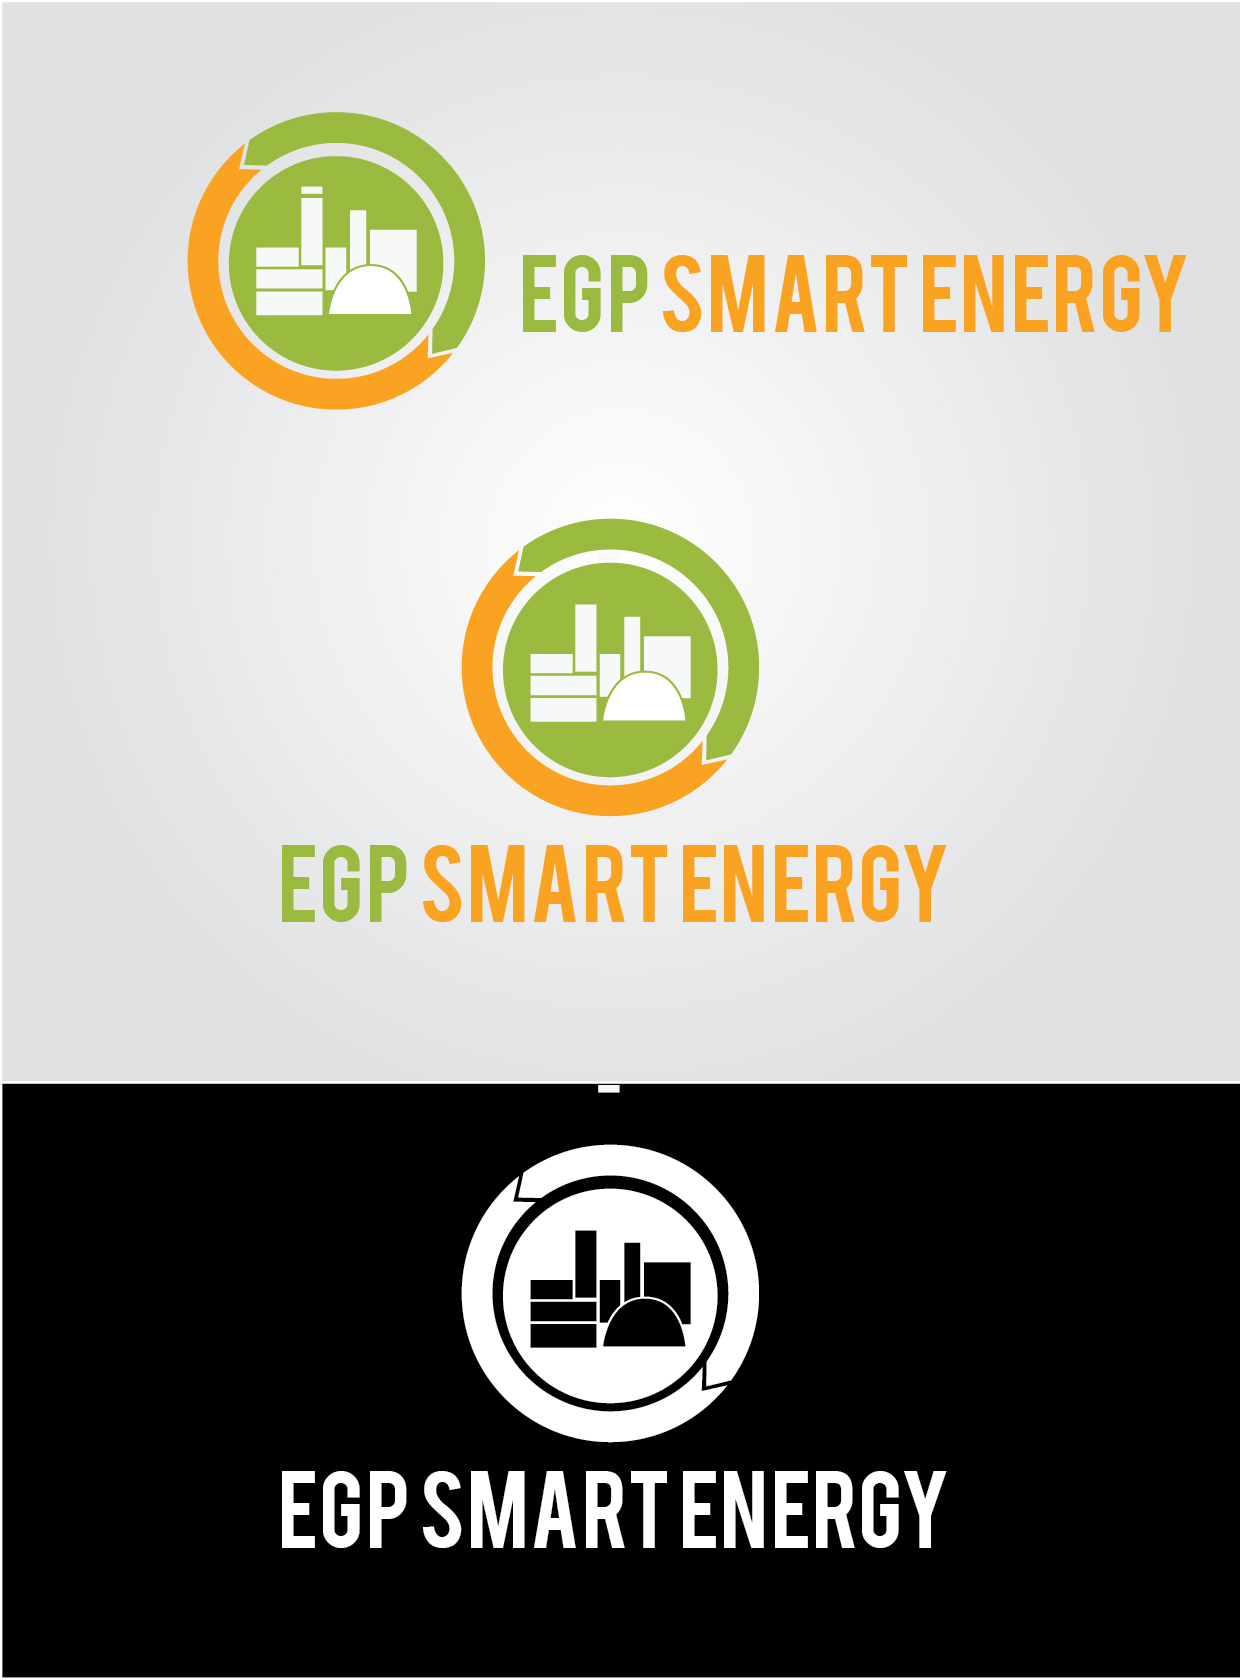 Logo Design by mediaproductionart - Entry No. 39 in the Logo Design Contest Captivating Logo Design for EGP Smart Energy.